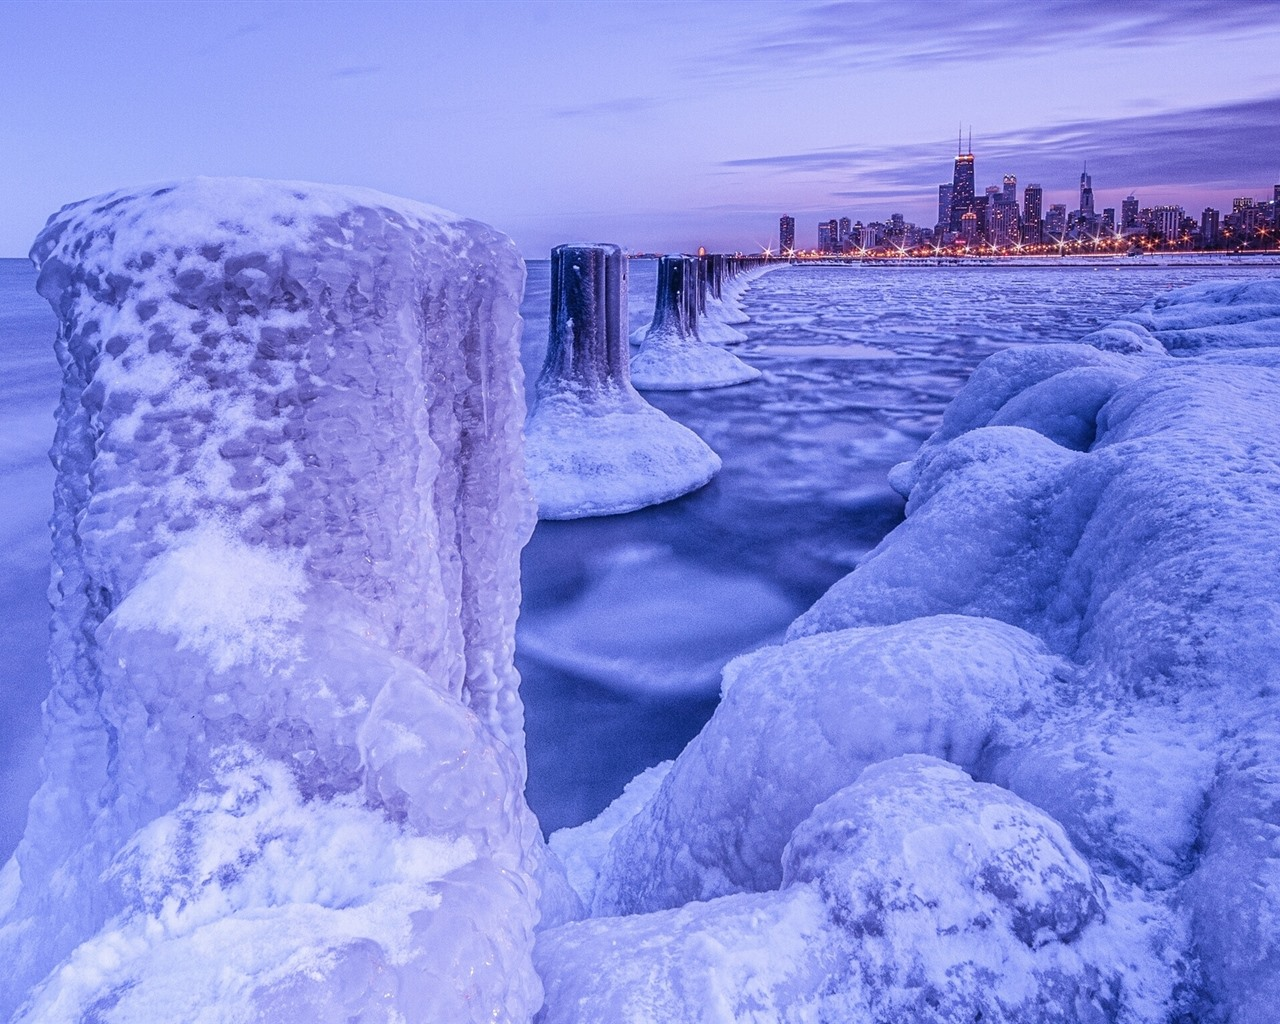 Chicago Sports Wallpaper Iphone 6s: Chicago, Snow, Ice, Sea, City, Winter 750x1334 IPhone 8/7